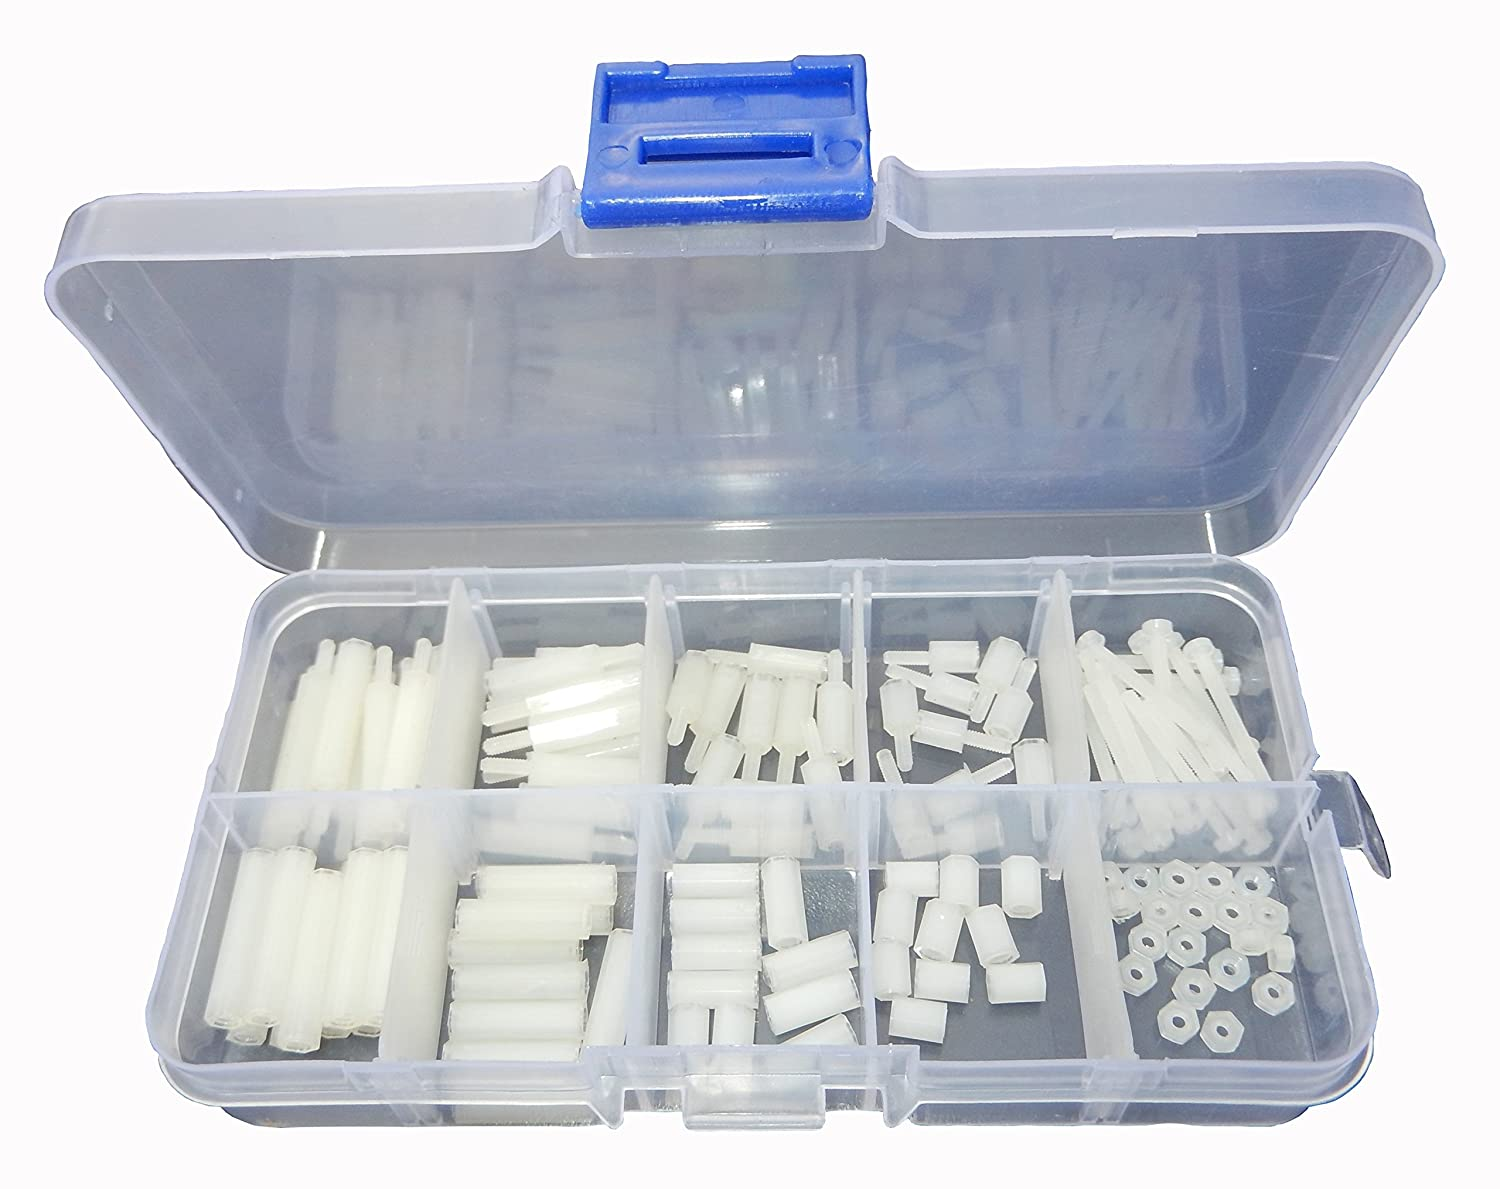 LU-CC 120Pcs M2 White Nylon Spacers Hex Nut Screw Stand-off Plastic Accesories Assortment Kit